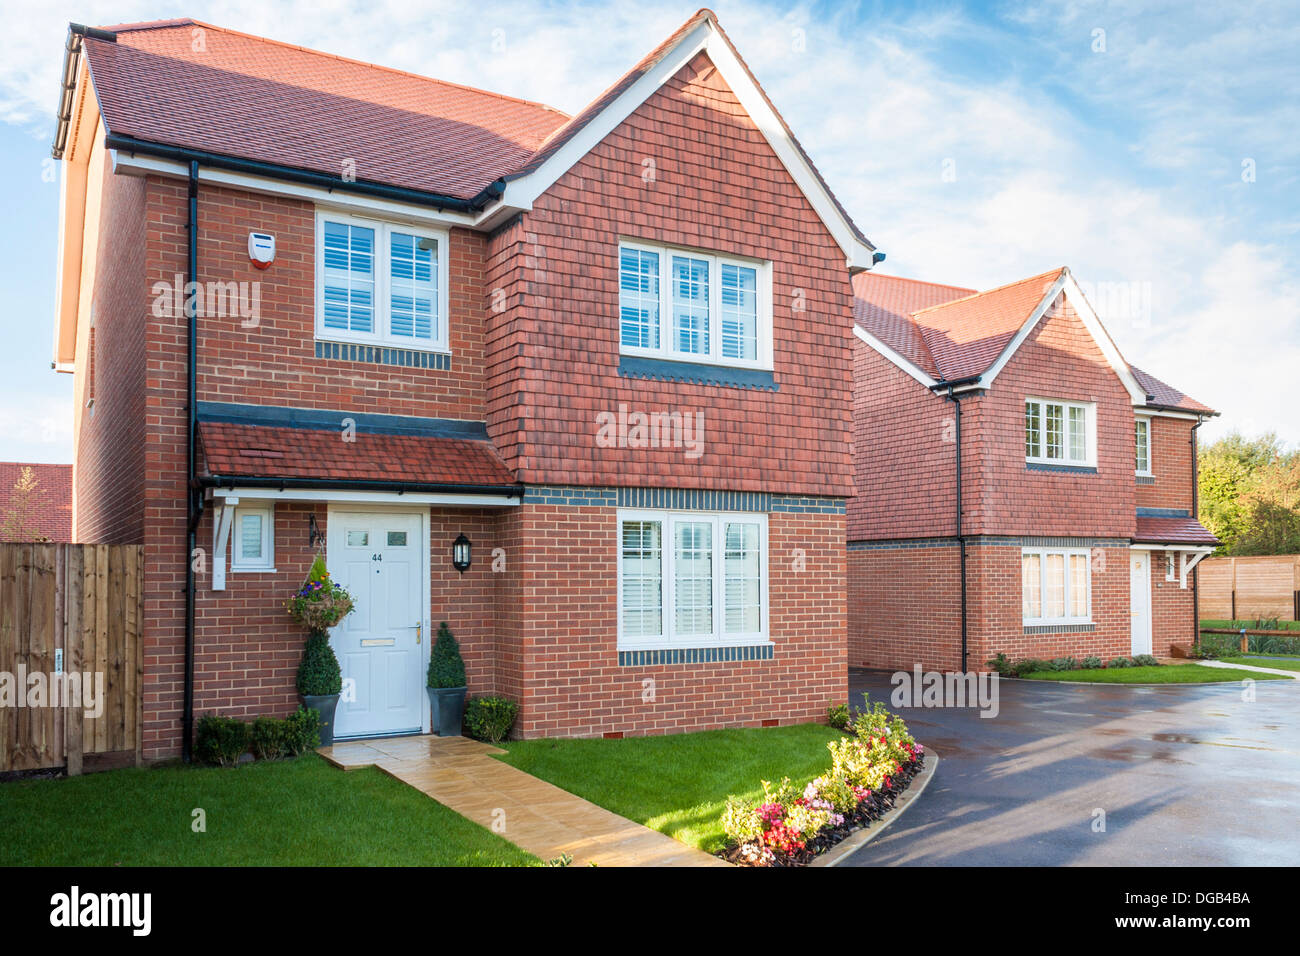 New house build housing estate in 2013. Reading, Berkshire, South East England, GB, UK. Stock Photo